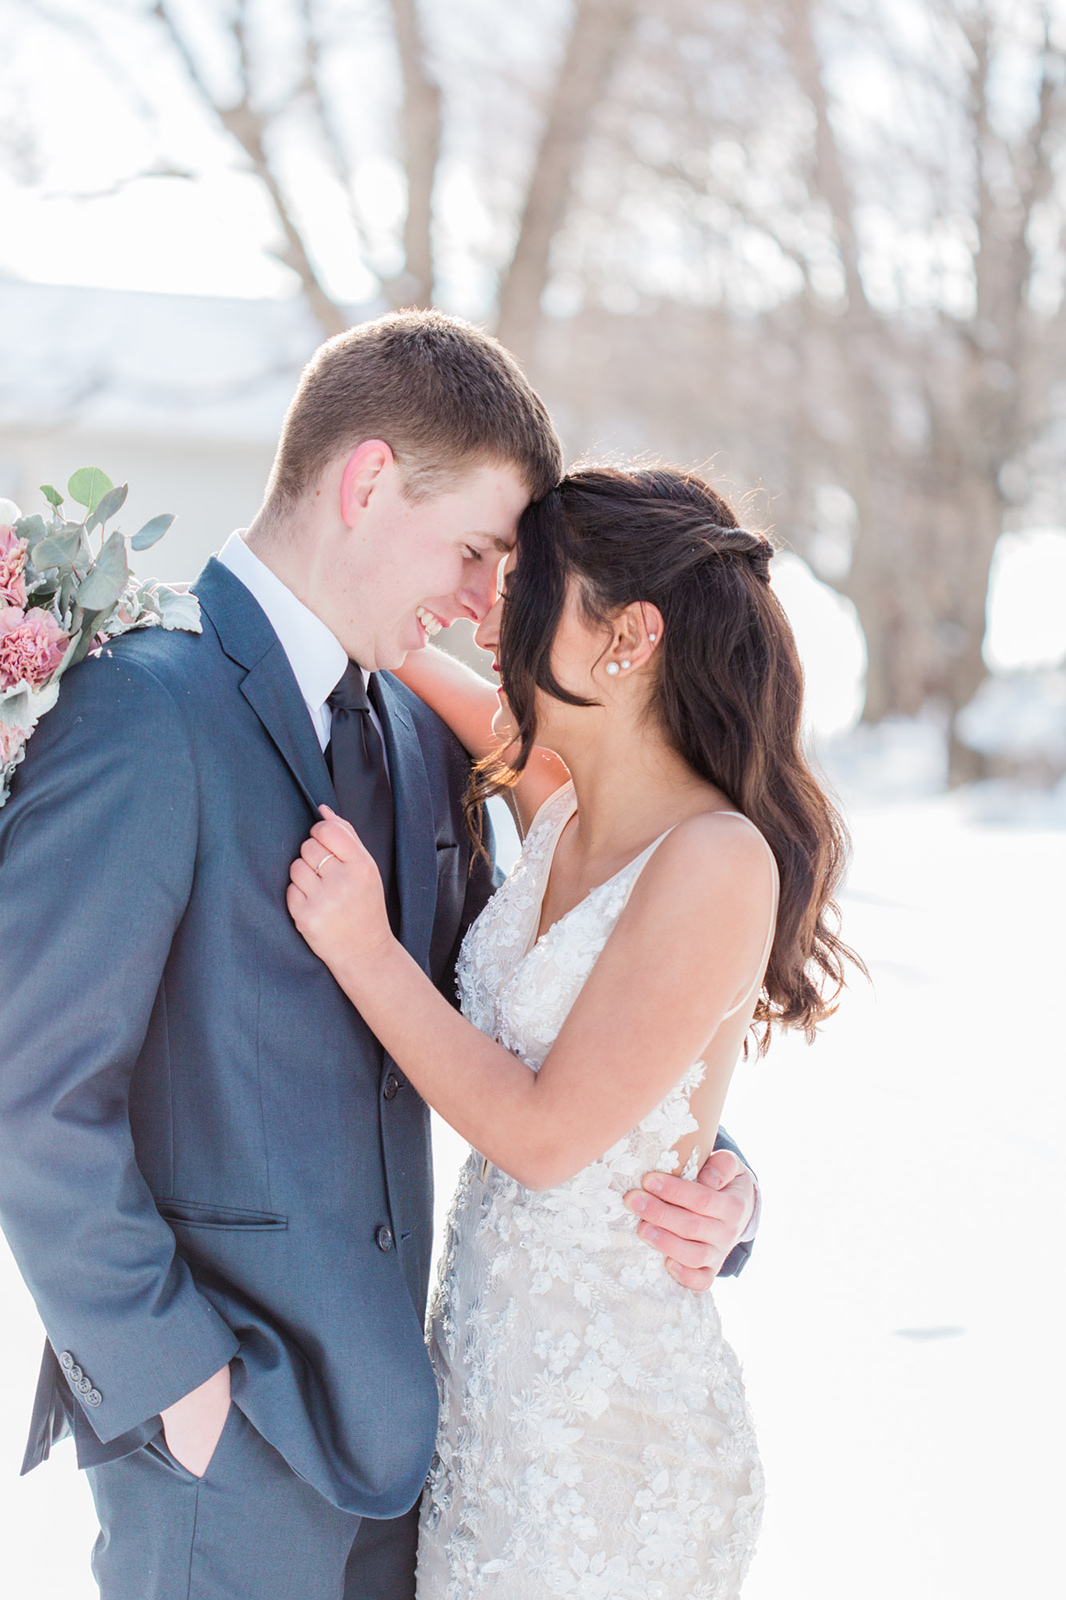 winter snowy outdoor wedding photo